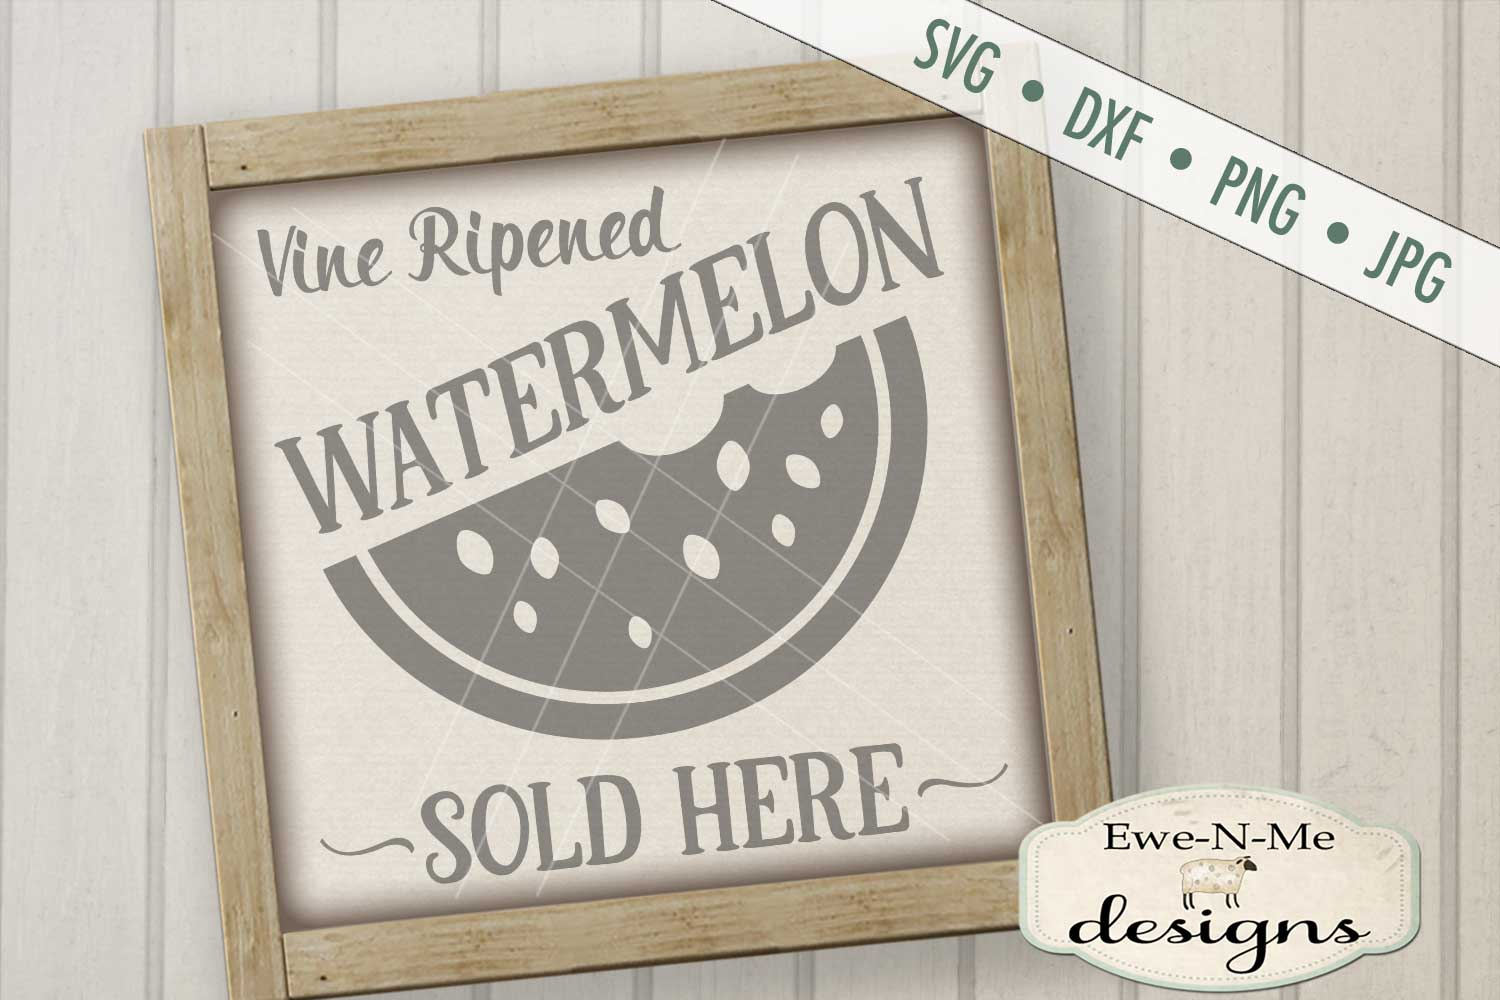 Vine Ripened Watermelon Sold Here SVG DXF Files example image 1